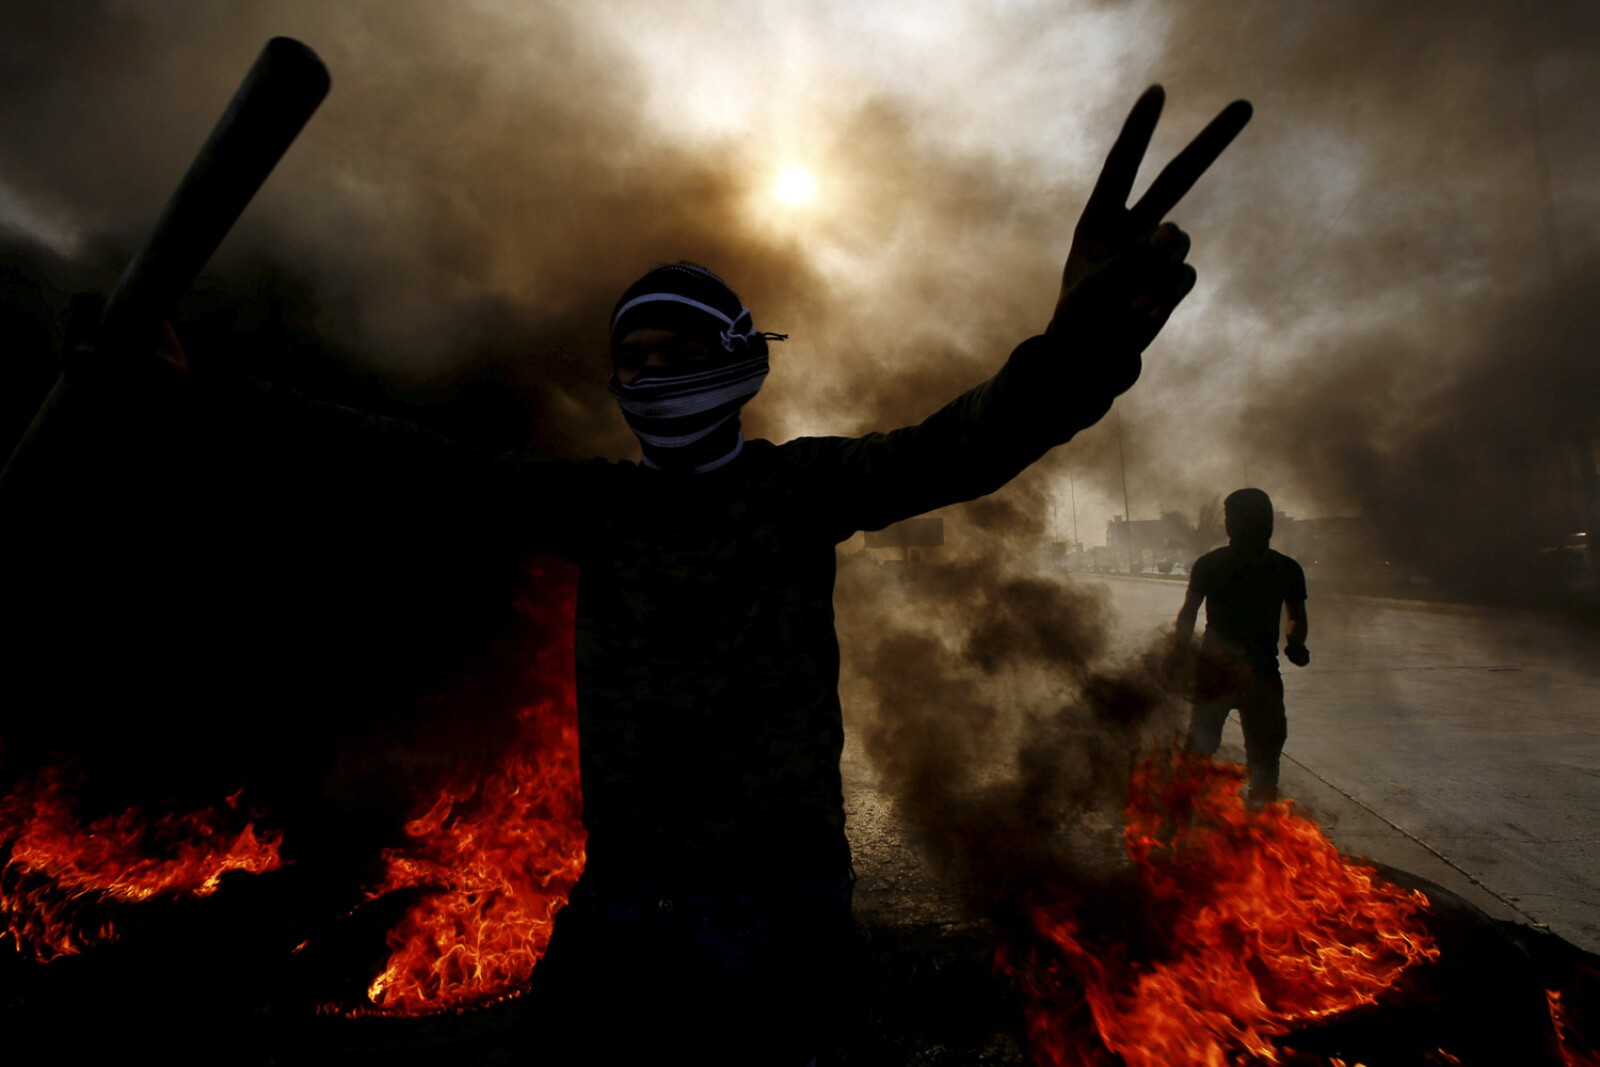 An Iraqi demonstrator gestures near burning tires to block a road during ongoing anti-government protests in Najaf